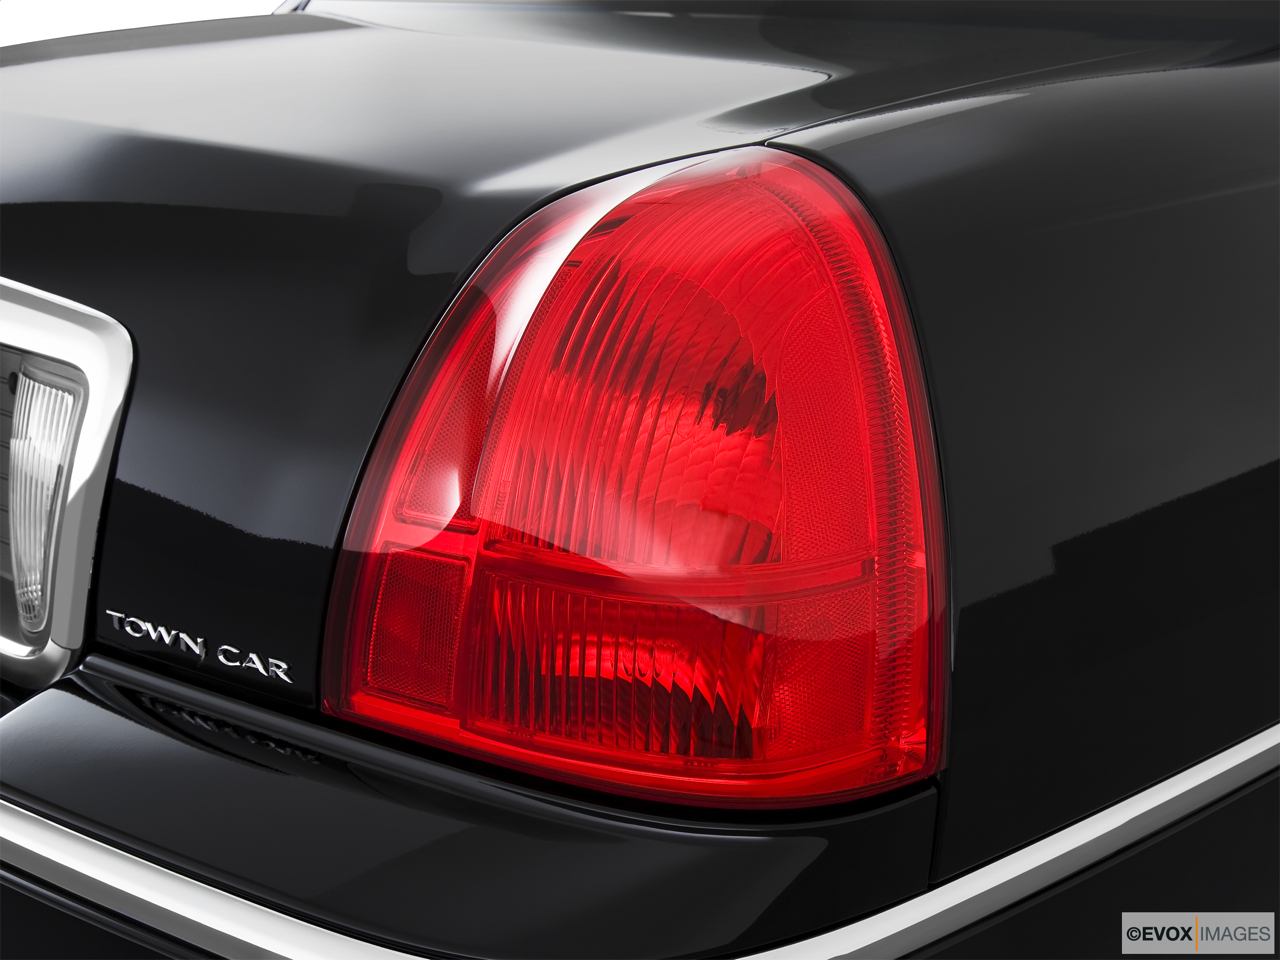 2010 Lincoln Town Car Signature L Passenger Side Taillight.